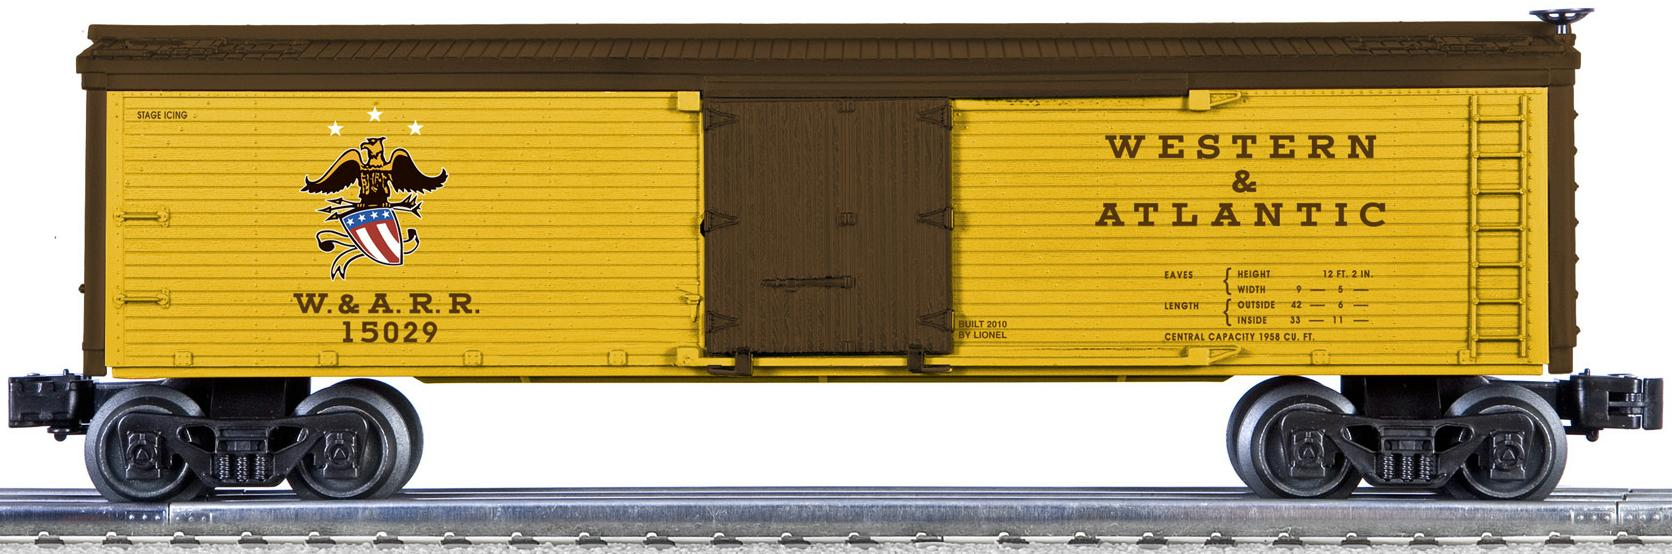 Western & Atlantic Wood-Sided Reefer image